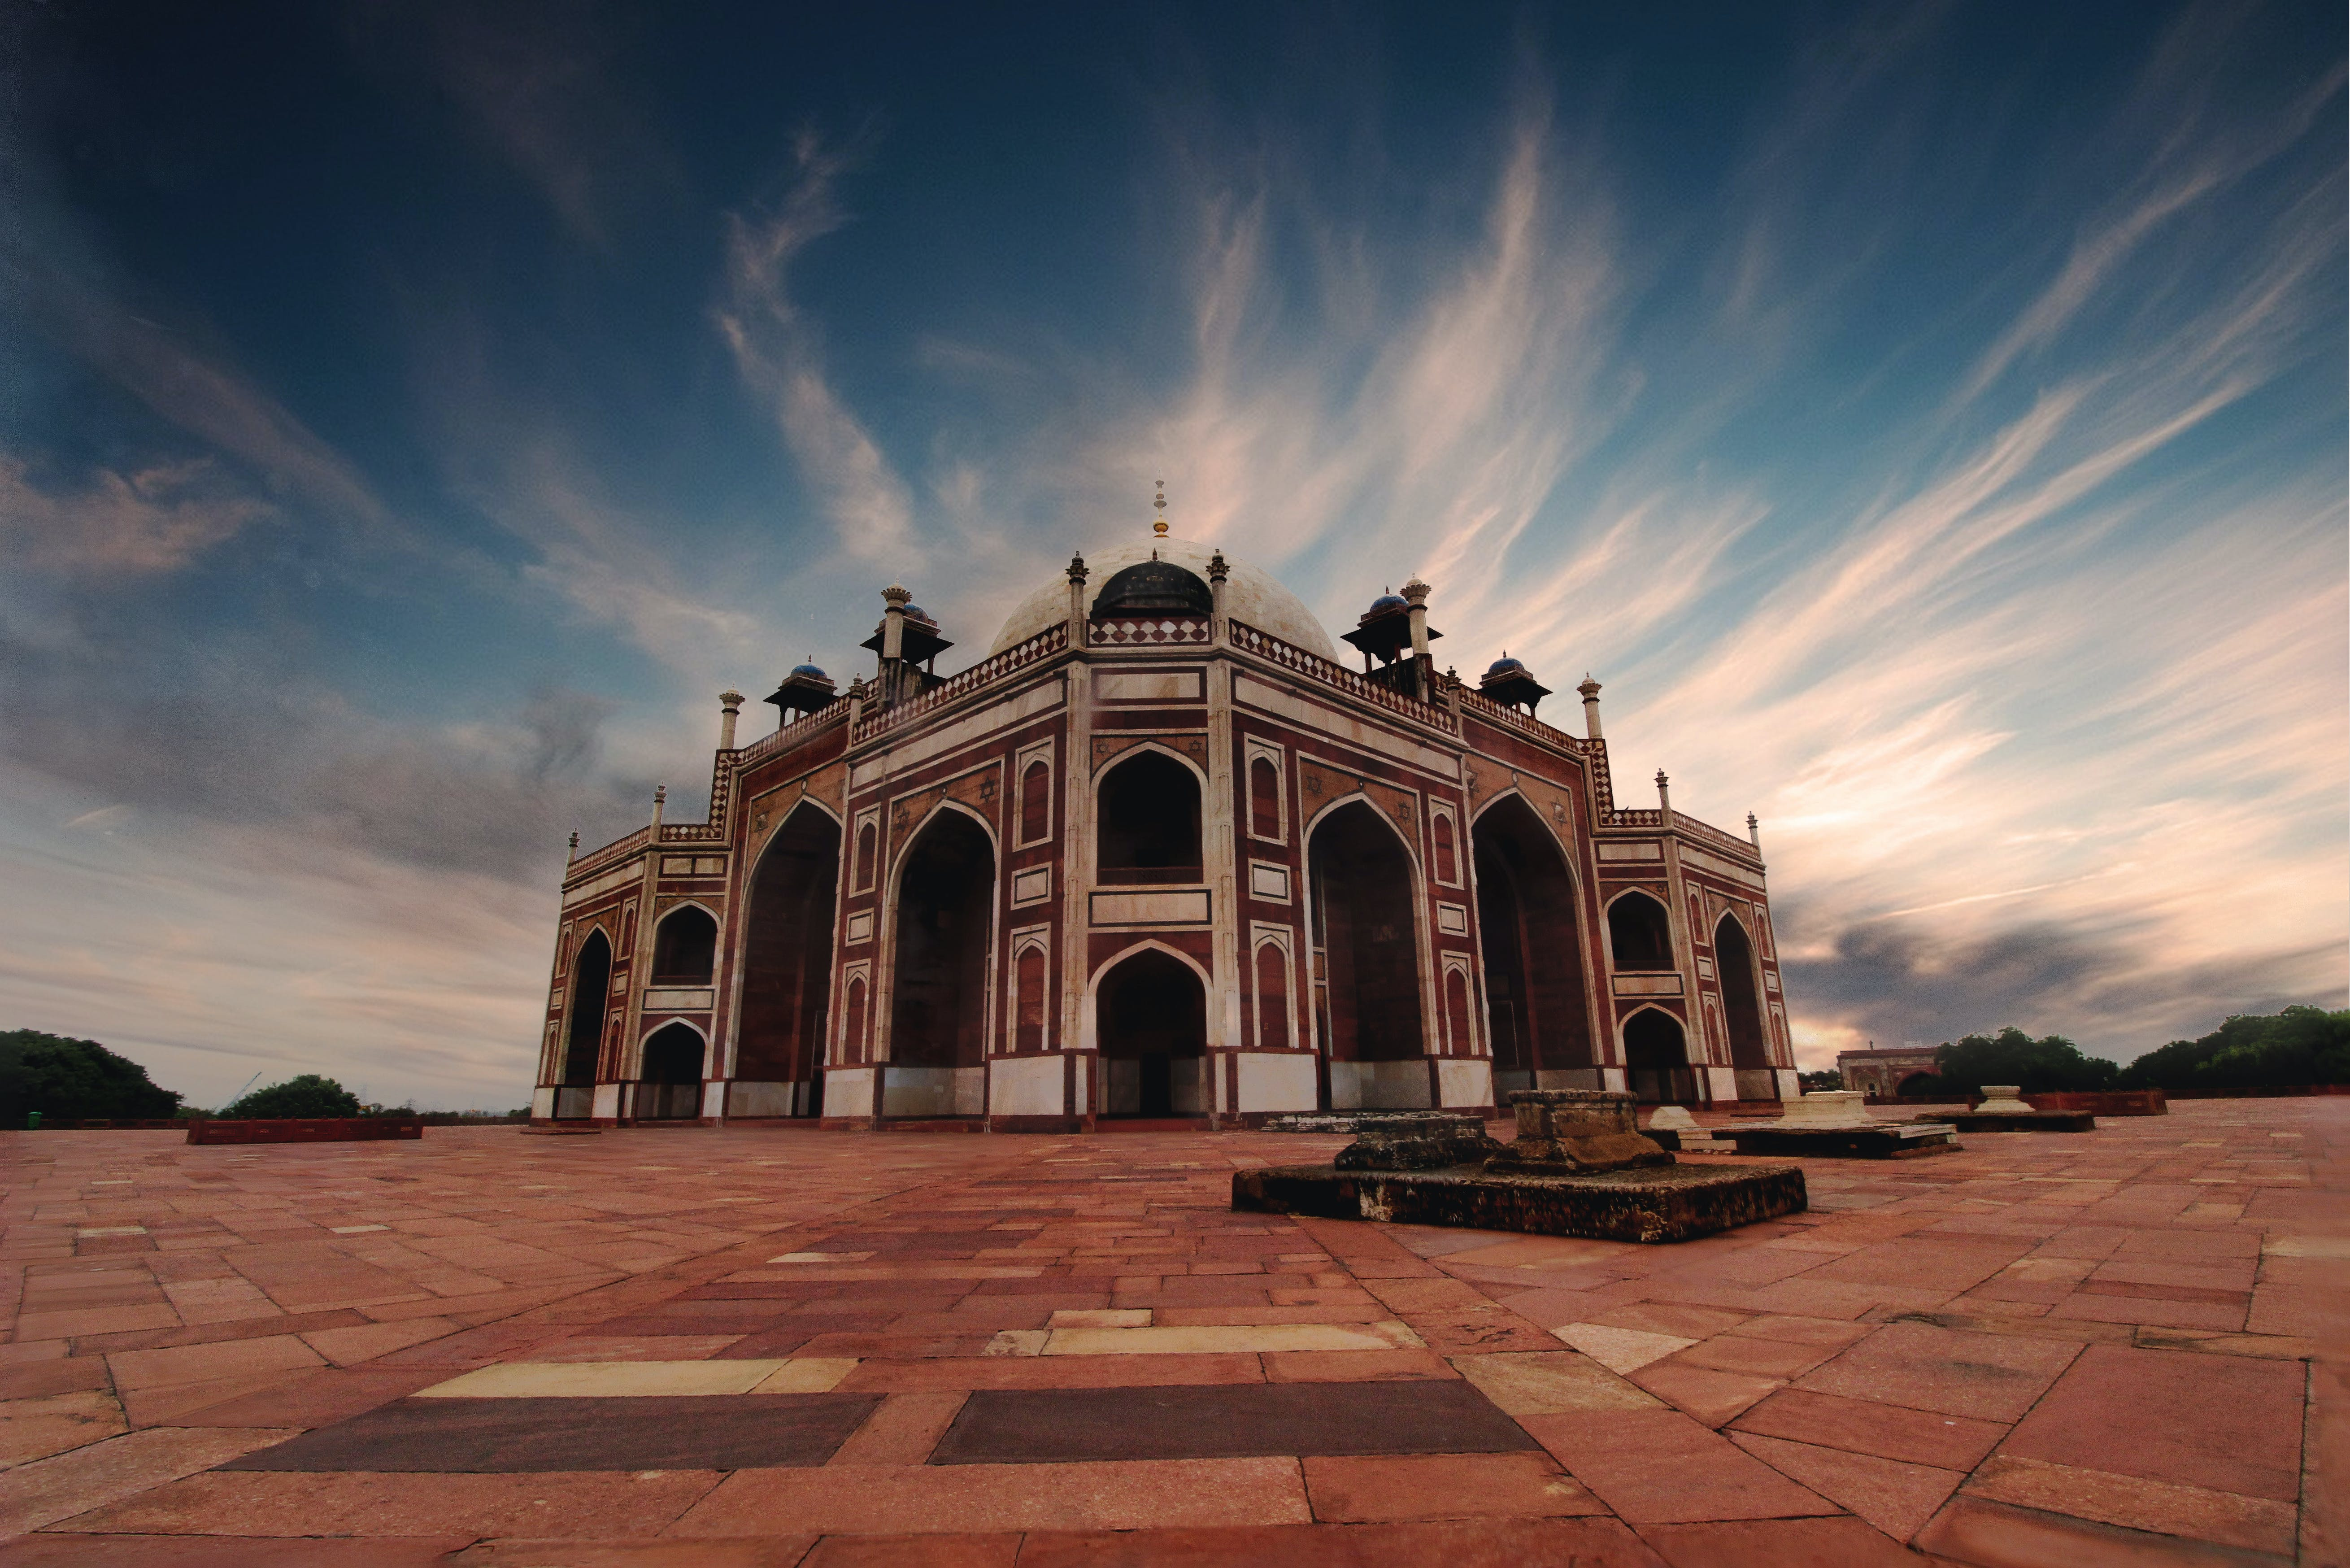 Brown and Black Mosque Under White and Blue Cloudy Sky